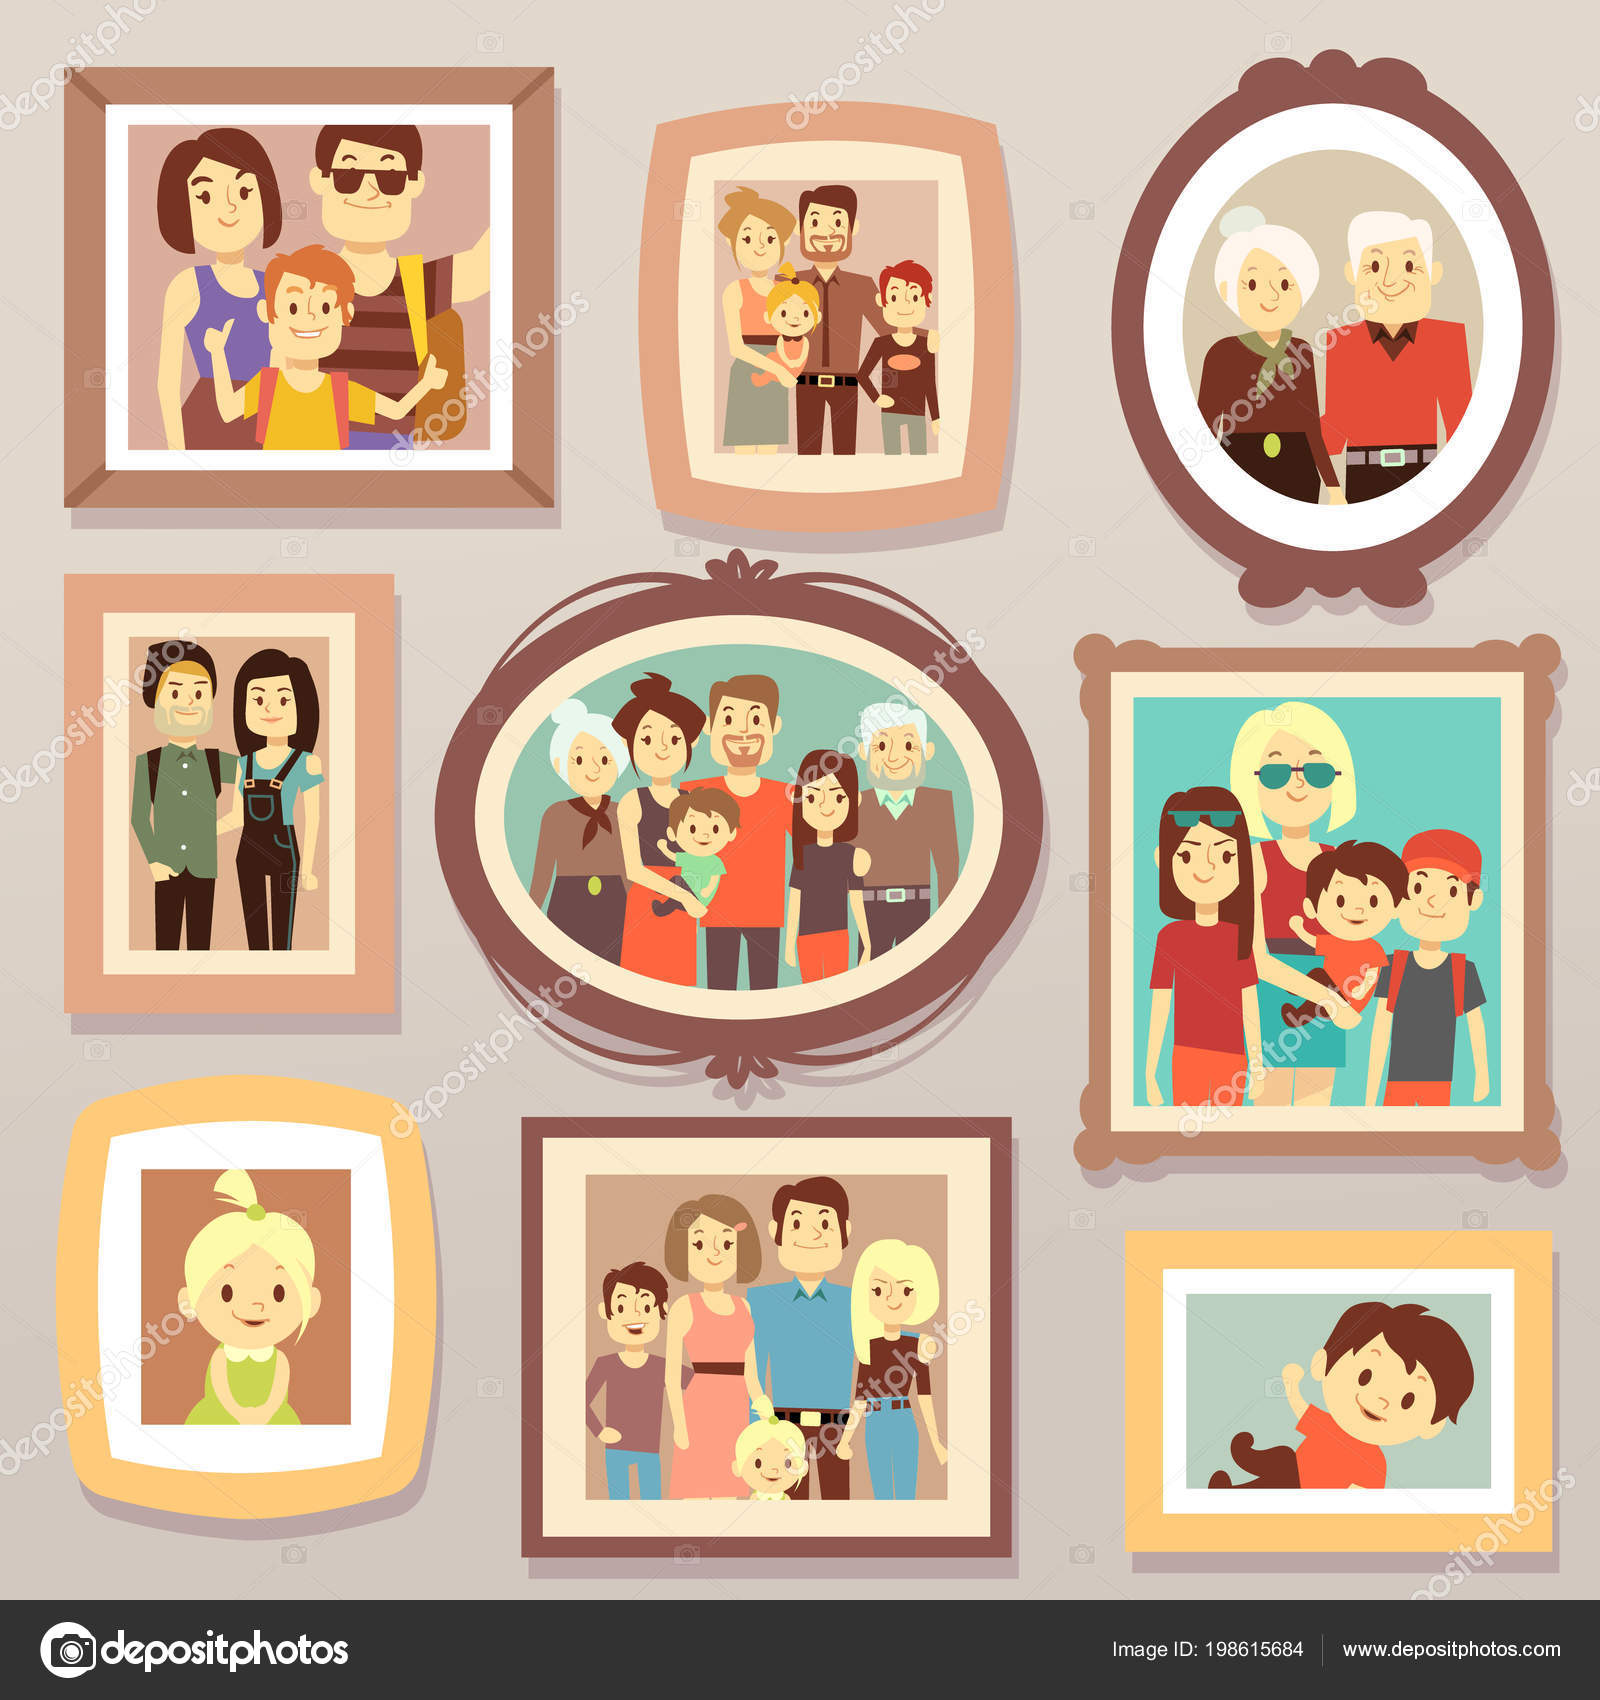 Big Family Smiling Photo Portraits In Frames On Wall Vector